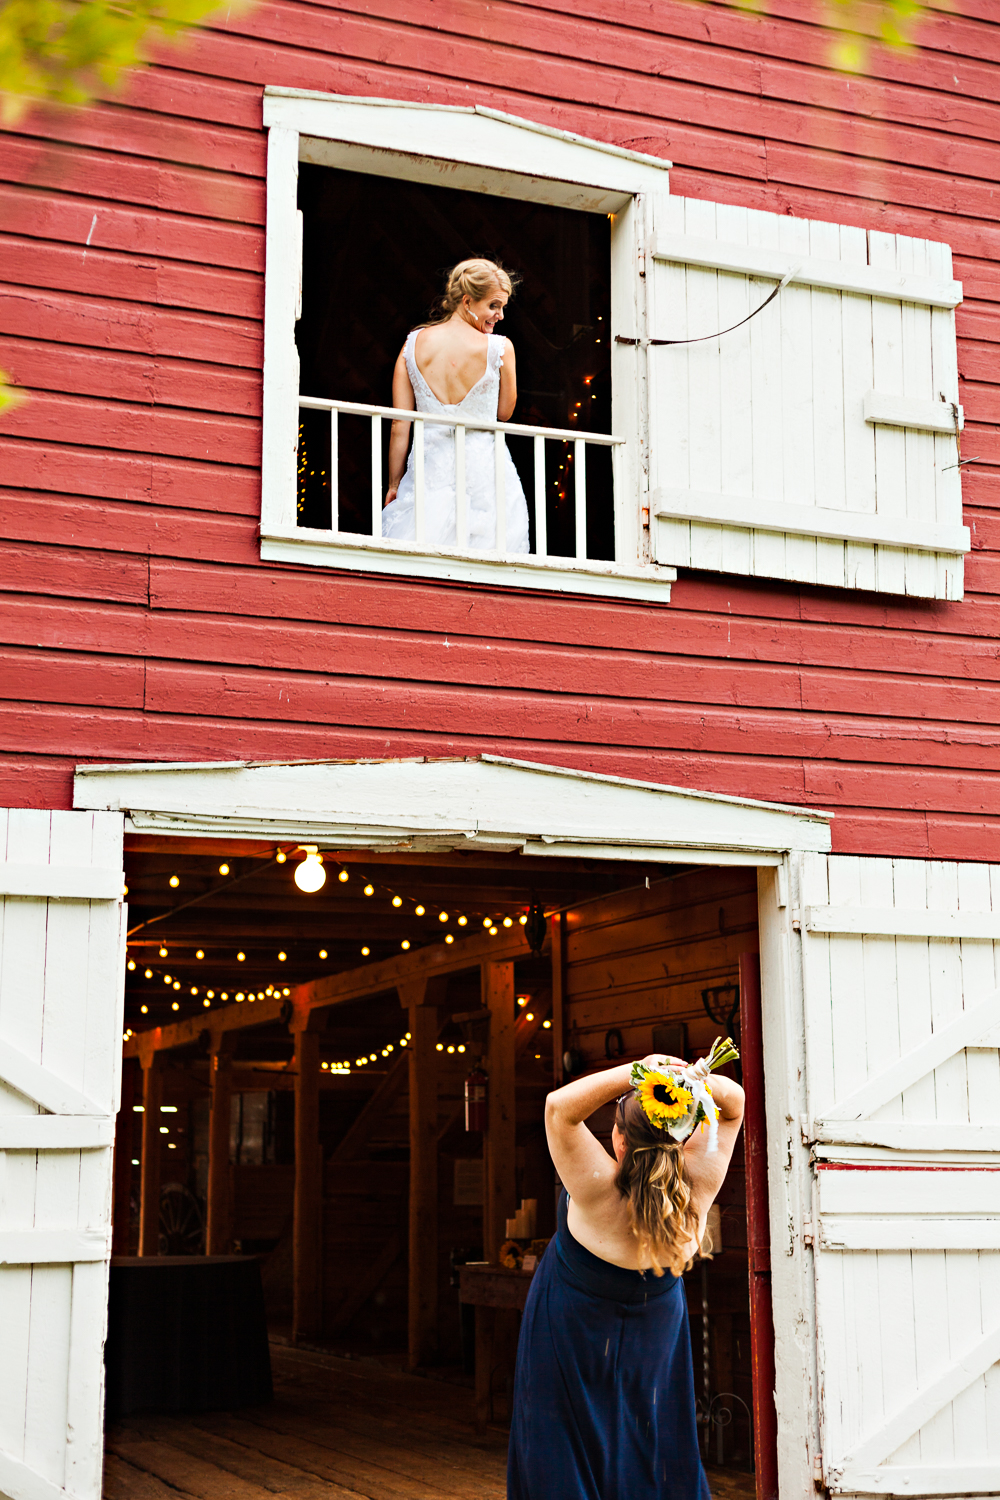 bozeman-montana-wedding-roys-barn-bridesmaid-catches-bouquet.jpg